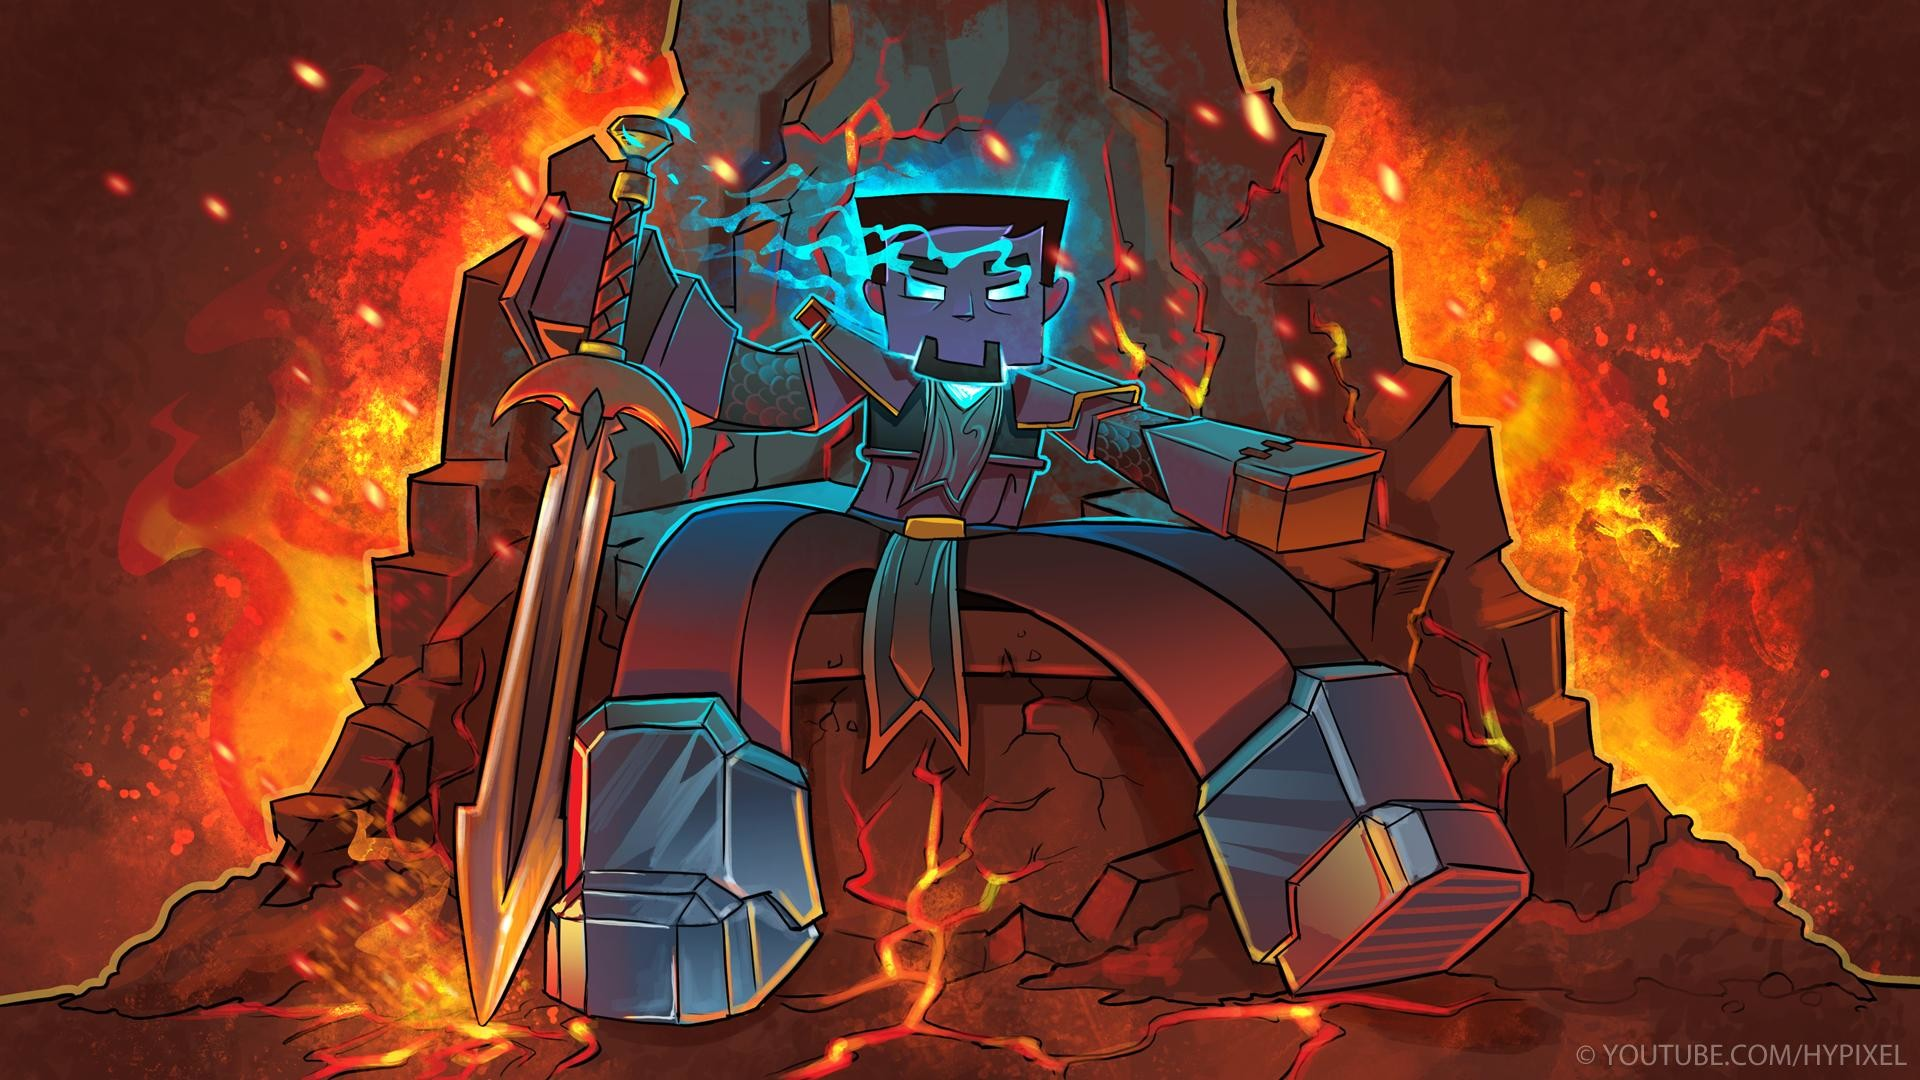 Cool Minecraft Wallpaper 64+ pictures